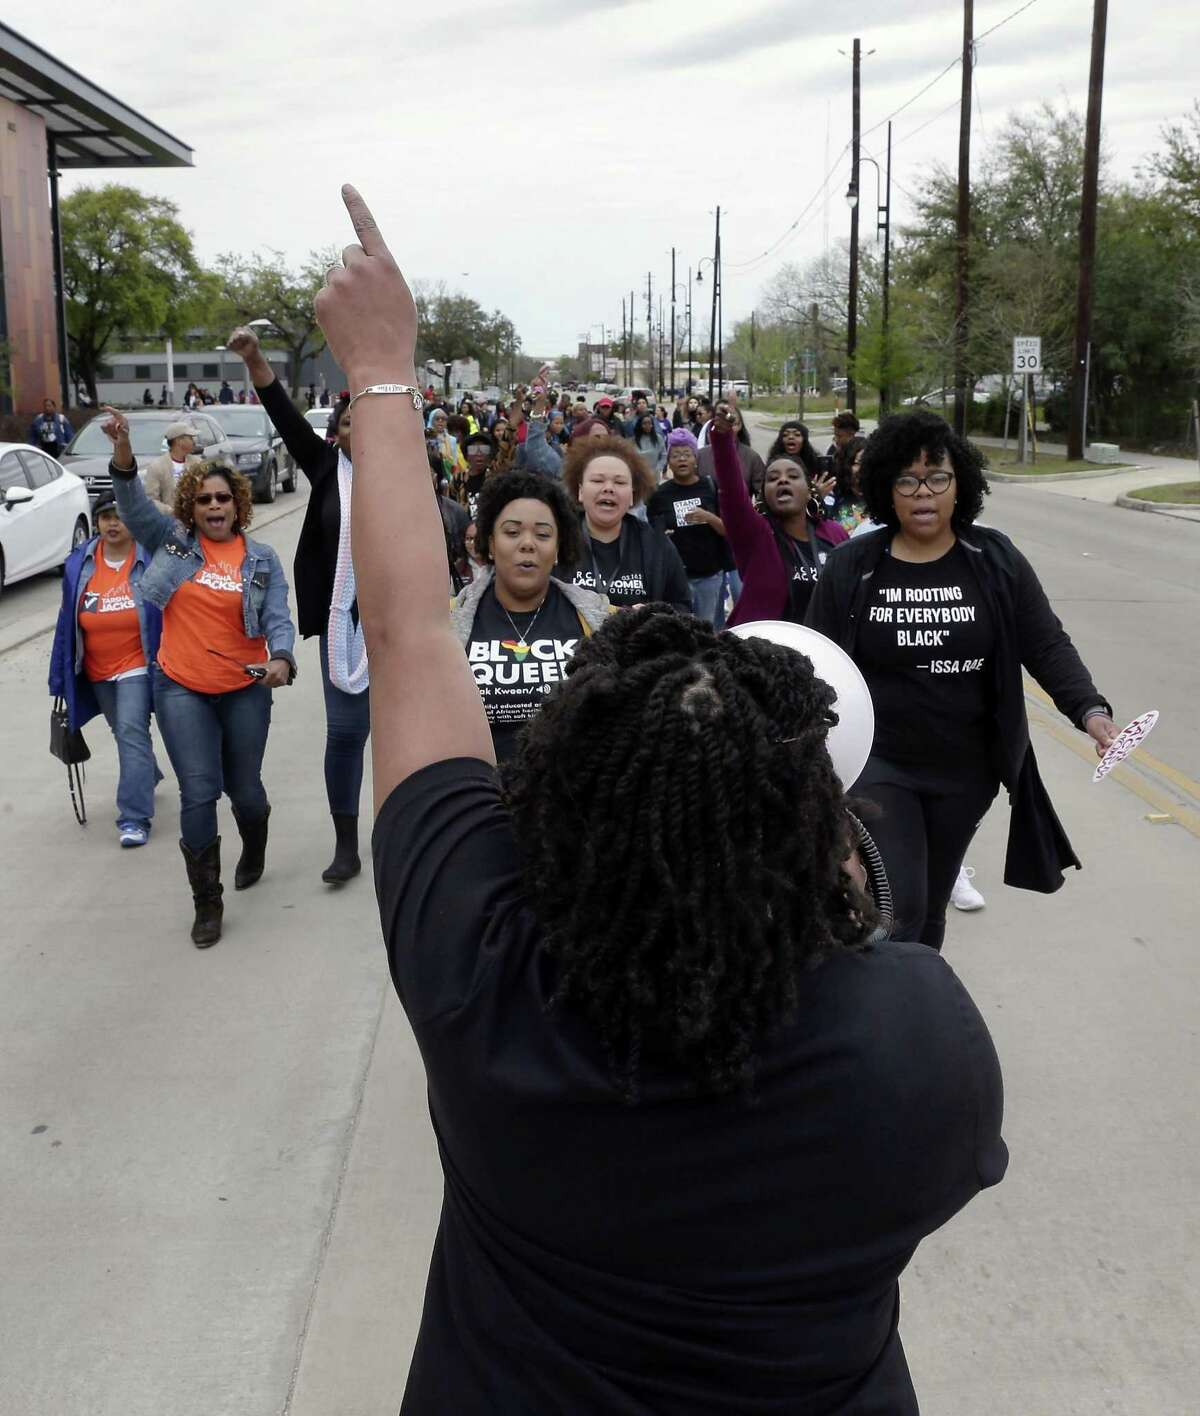 Founder Kandice Webber leads the march south along Emancipation Avenue after the speakers event during the March for Black Women Houston 2019, starting at Emancipation Park Saturday, Mar. 16, 2019 in Houston, TX.